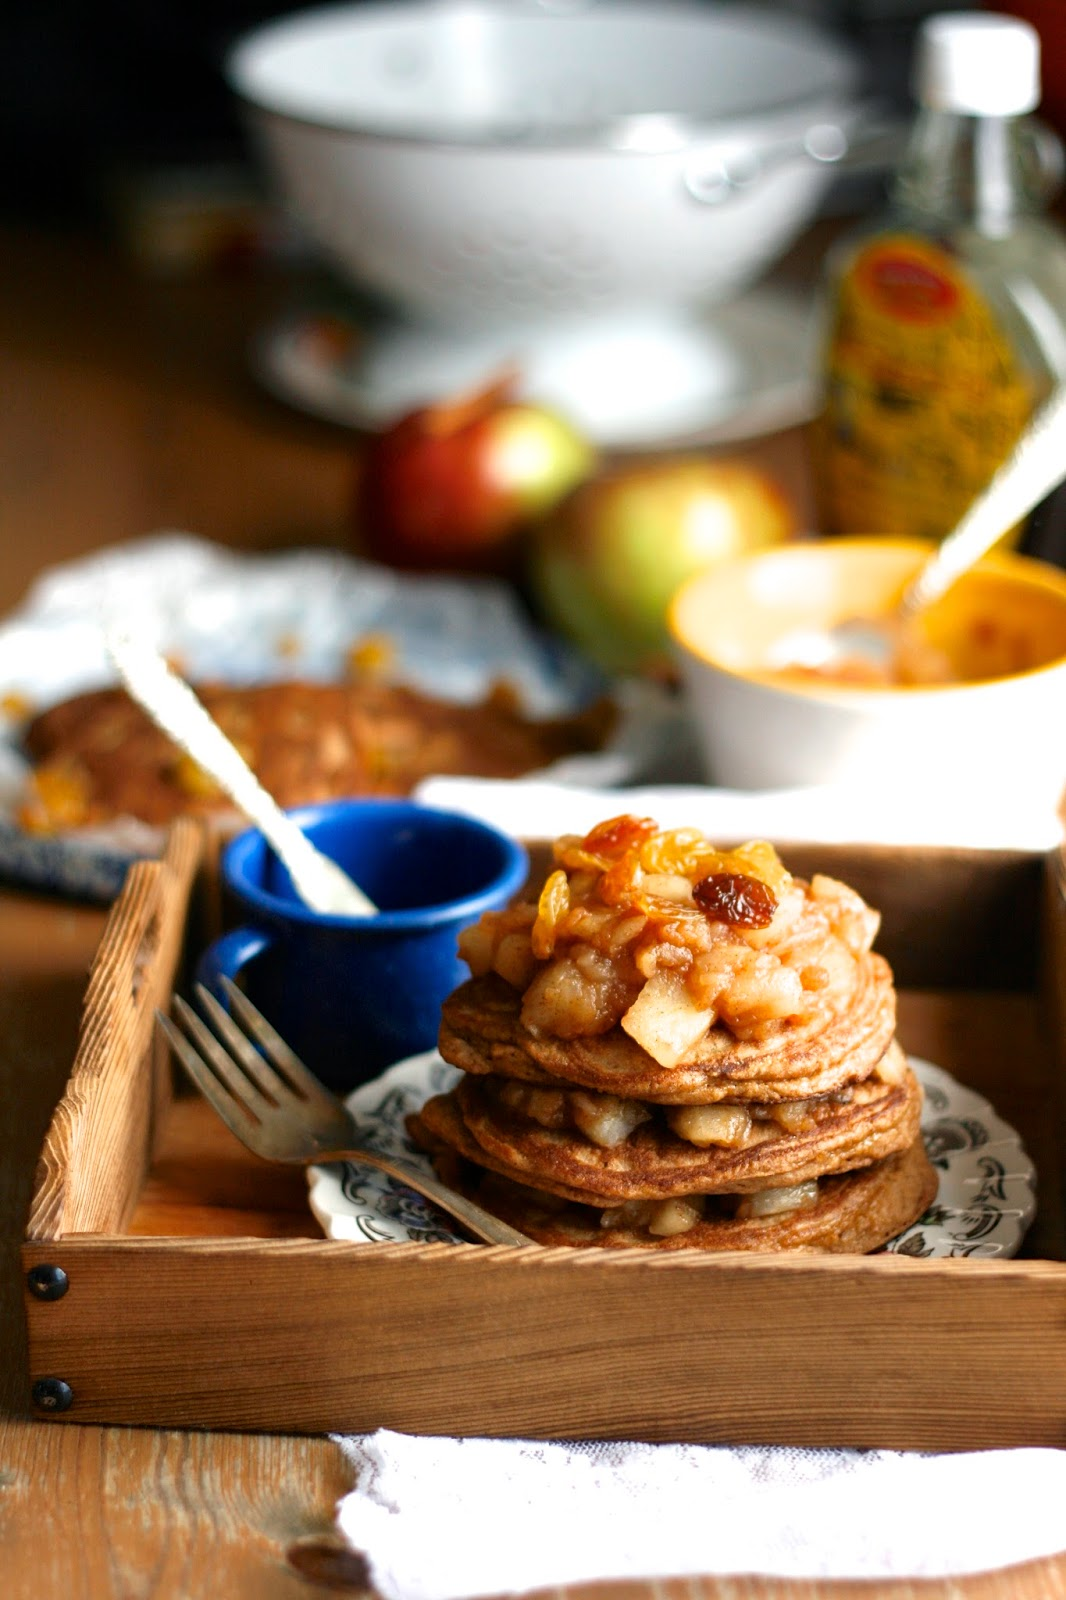 Indigo Scones: Gluten Free Cinnamon Raisin Pancakes with Apple Topping